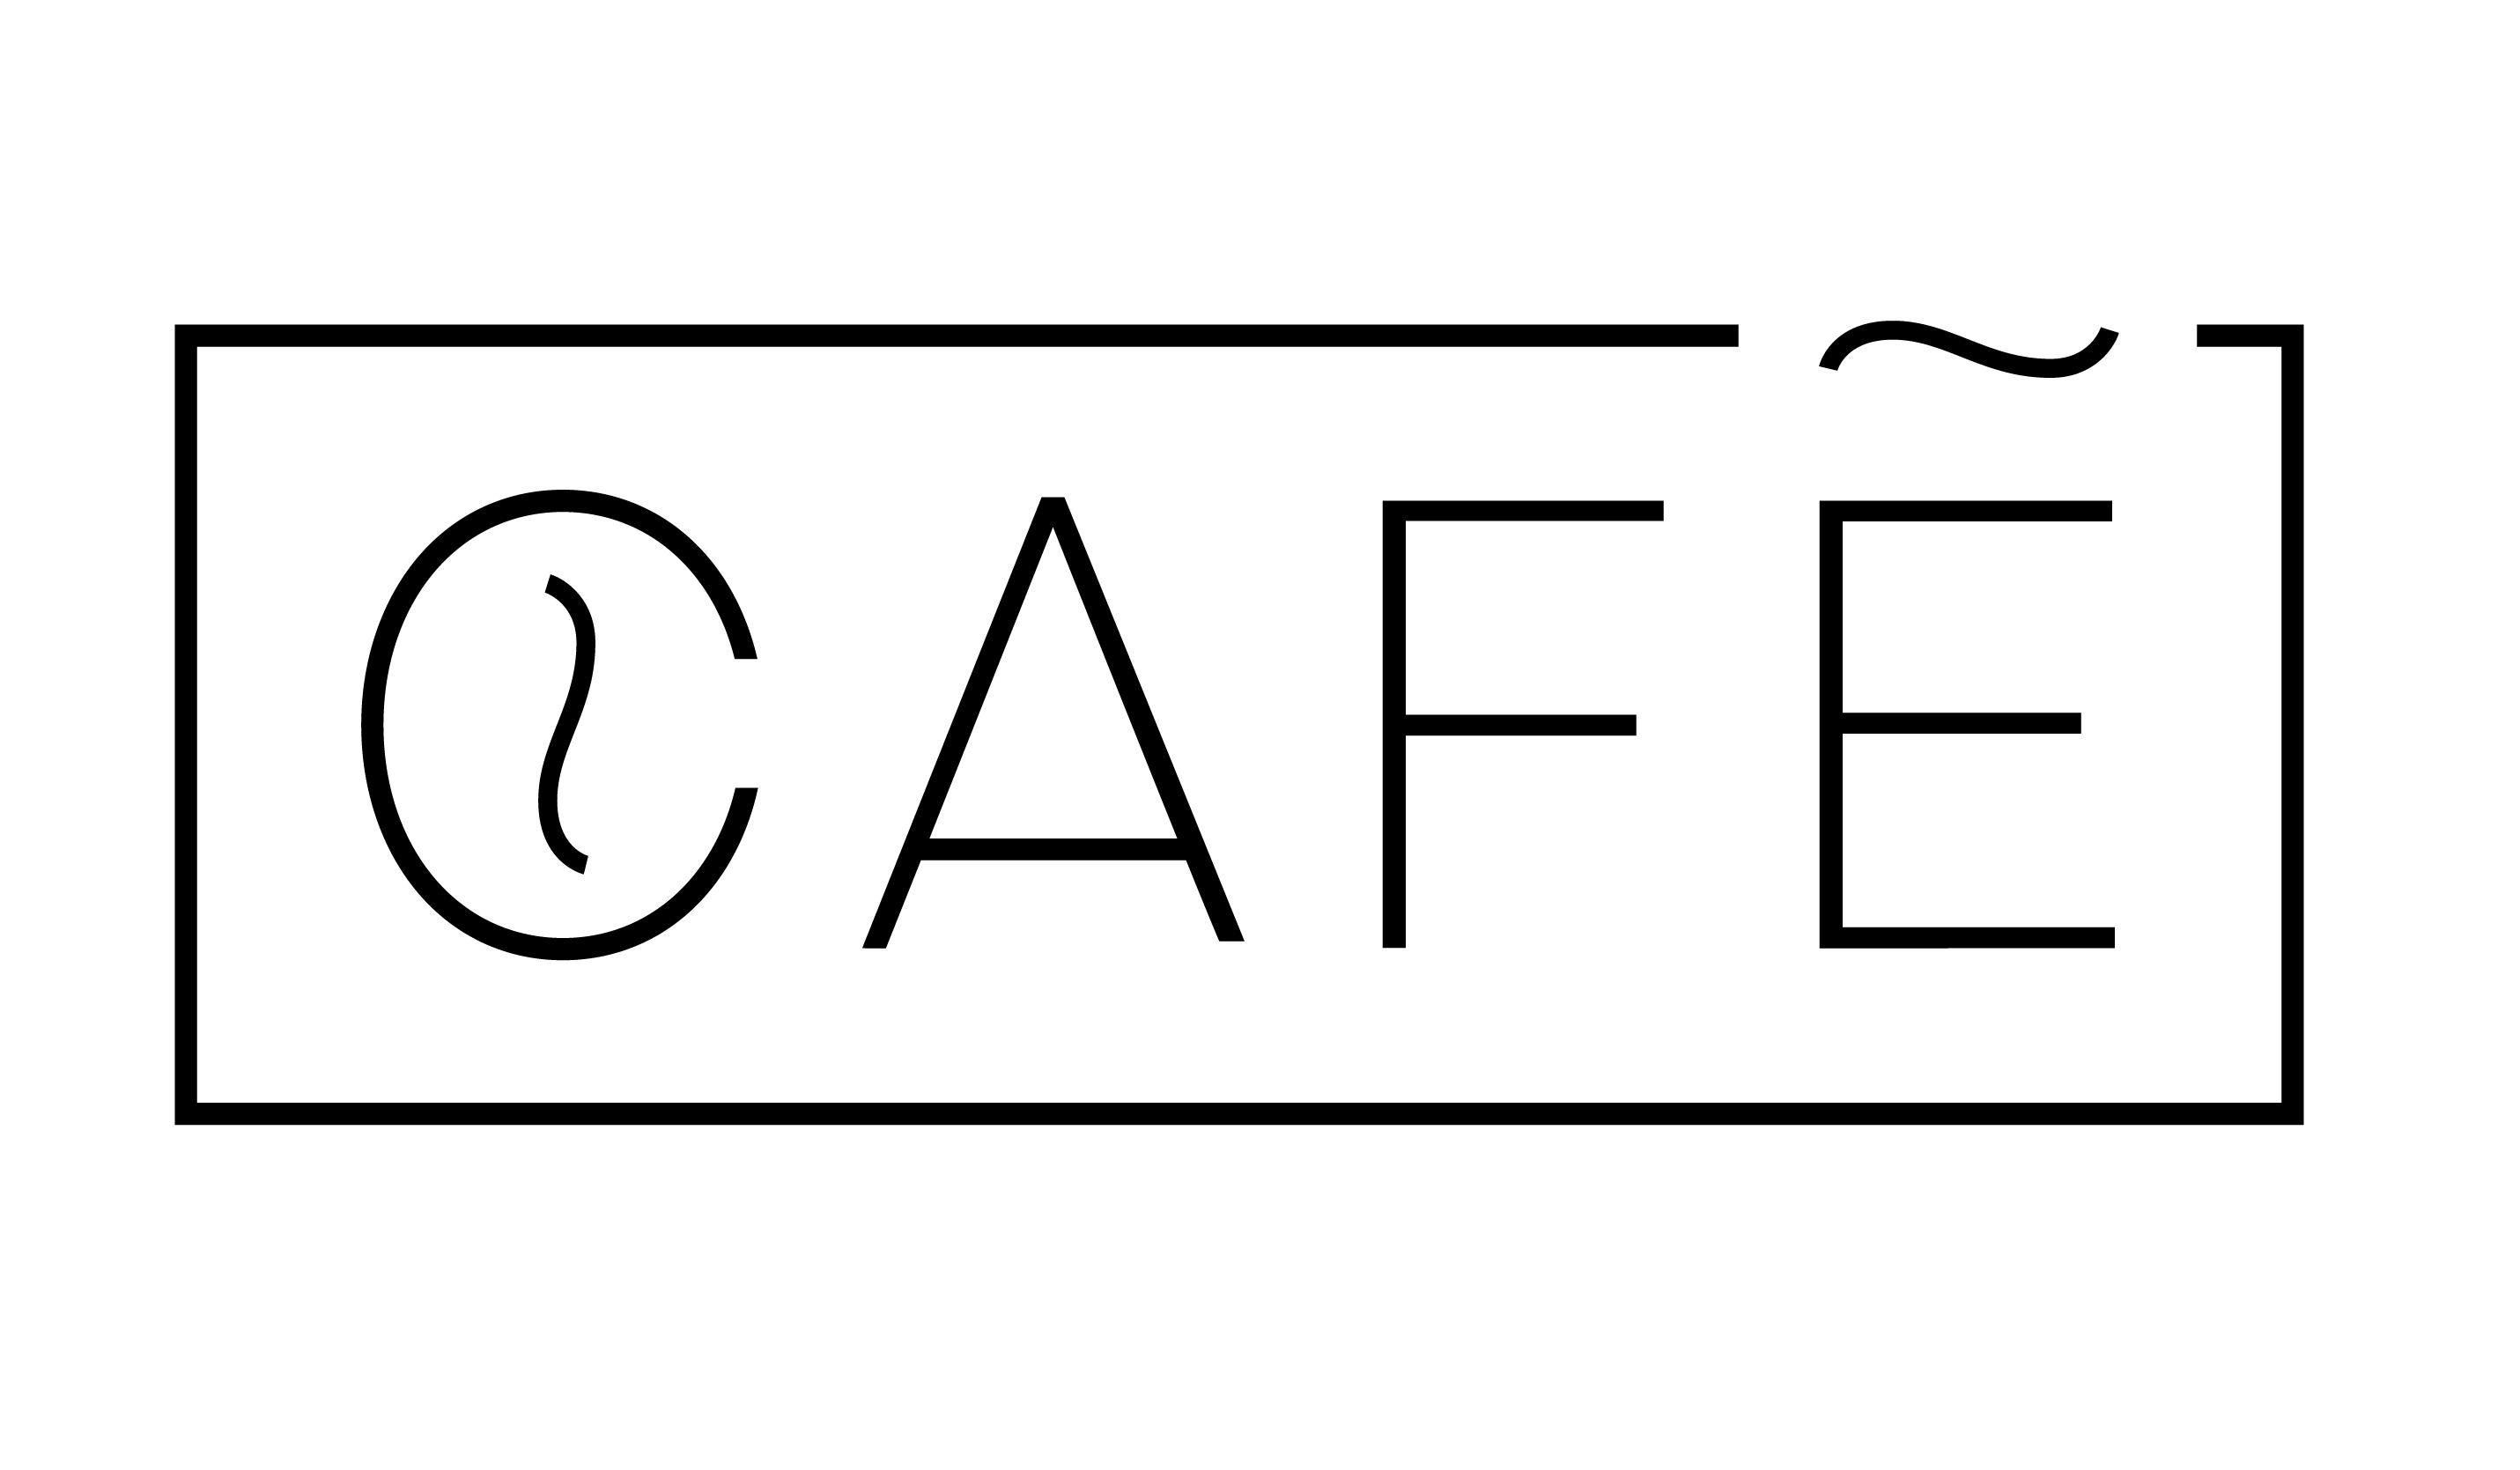 Logotipo de Cafe Lether Supply - Patrocinador